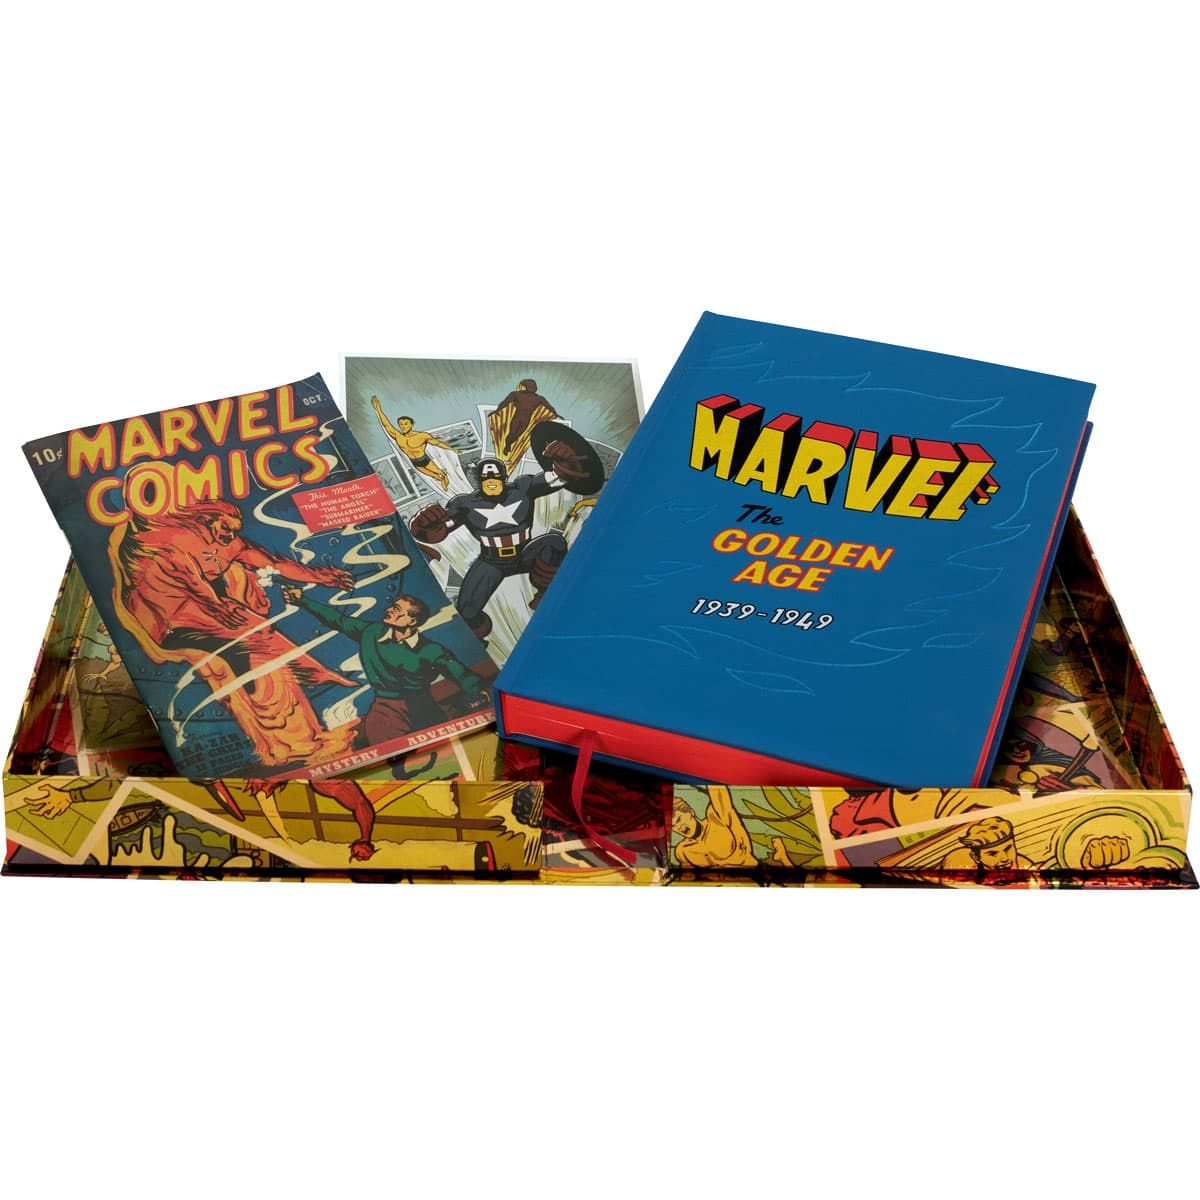 The Folio Society is releasing a facsimile of Marvel Comics #1